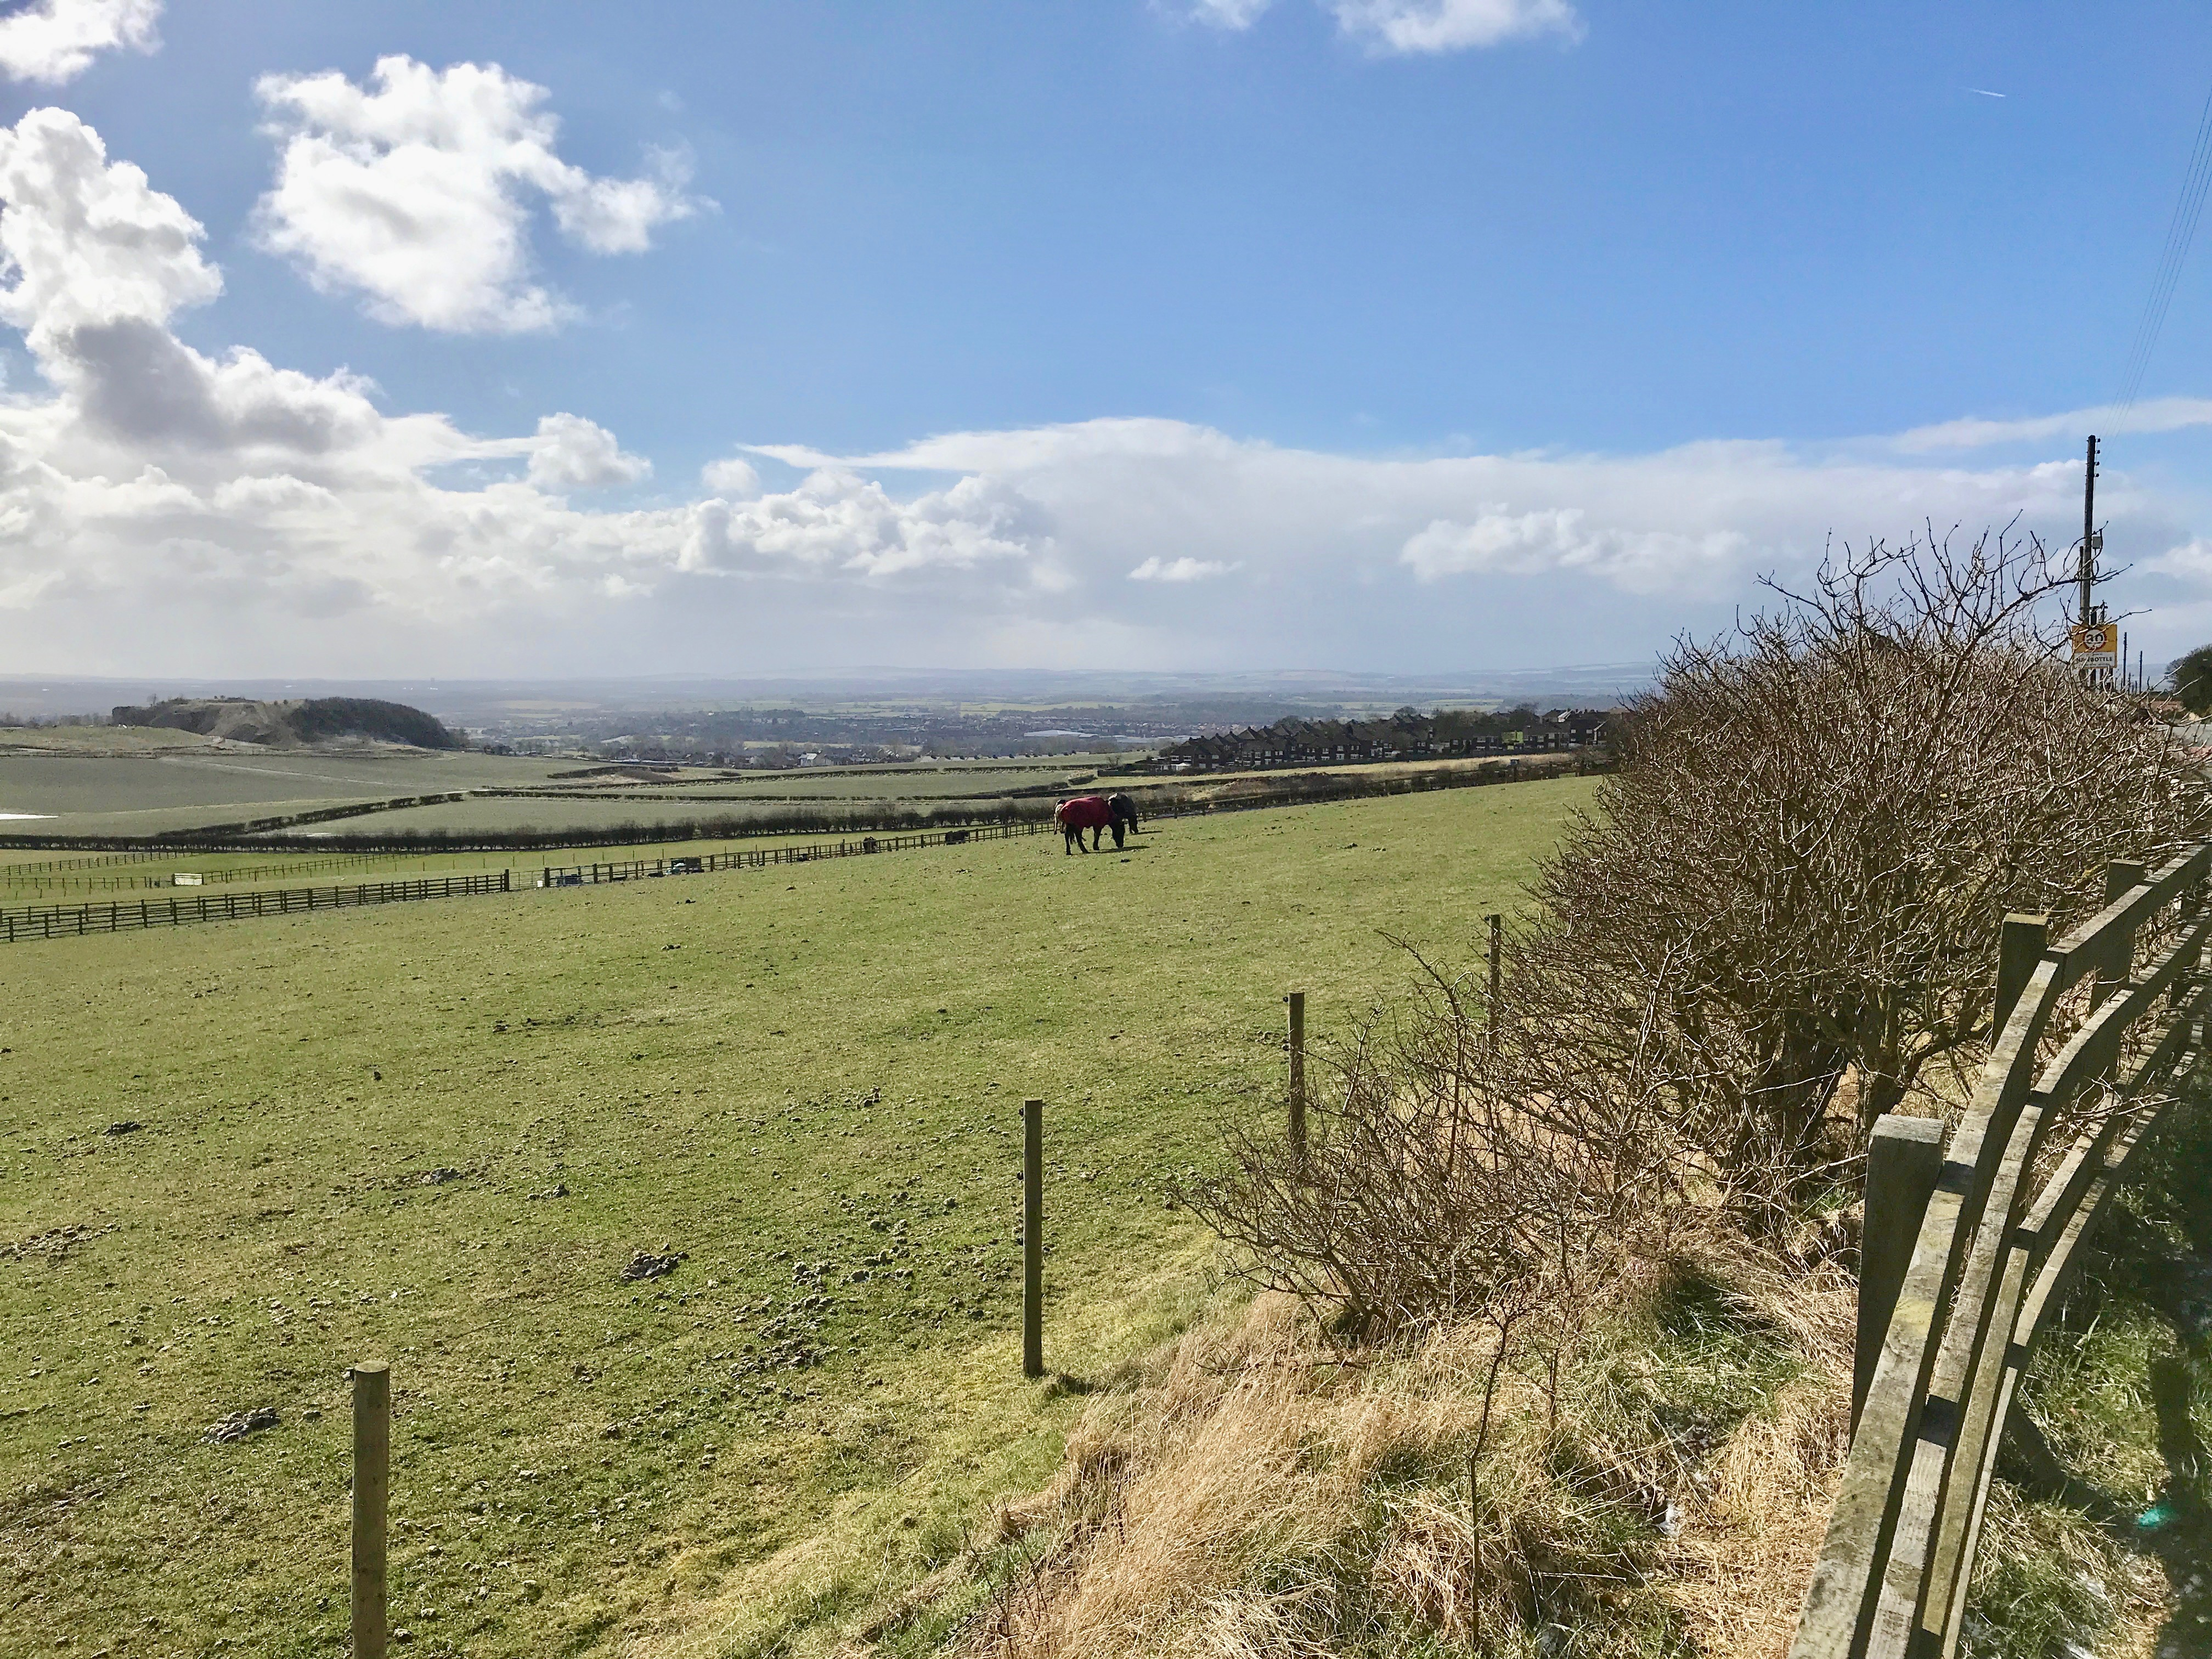 Taken from road by Over the Hill Farm, The Steadings